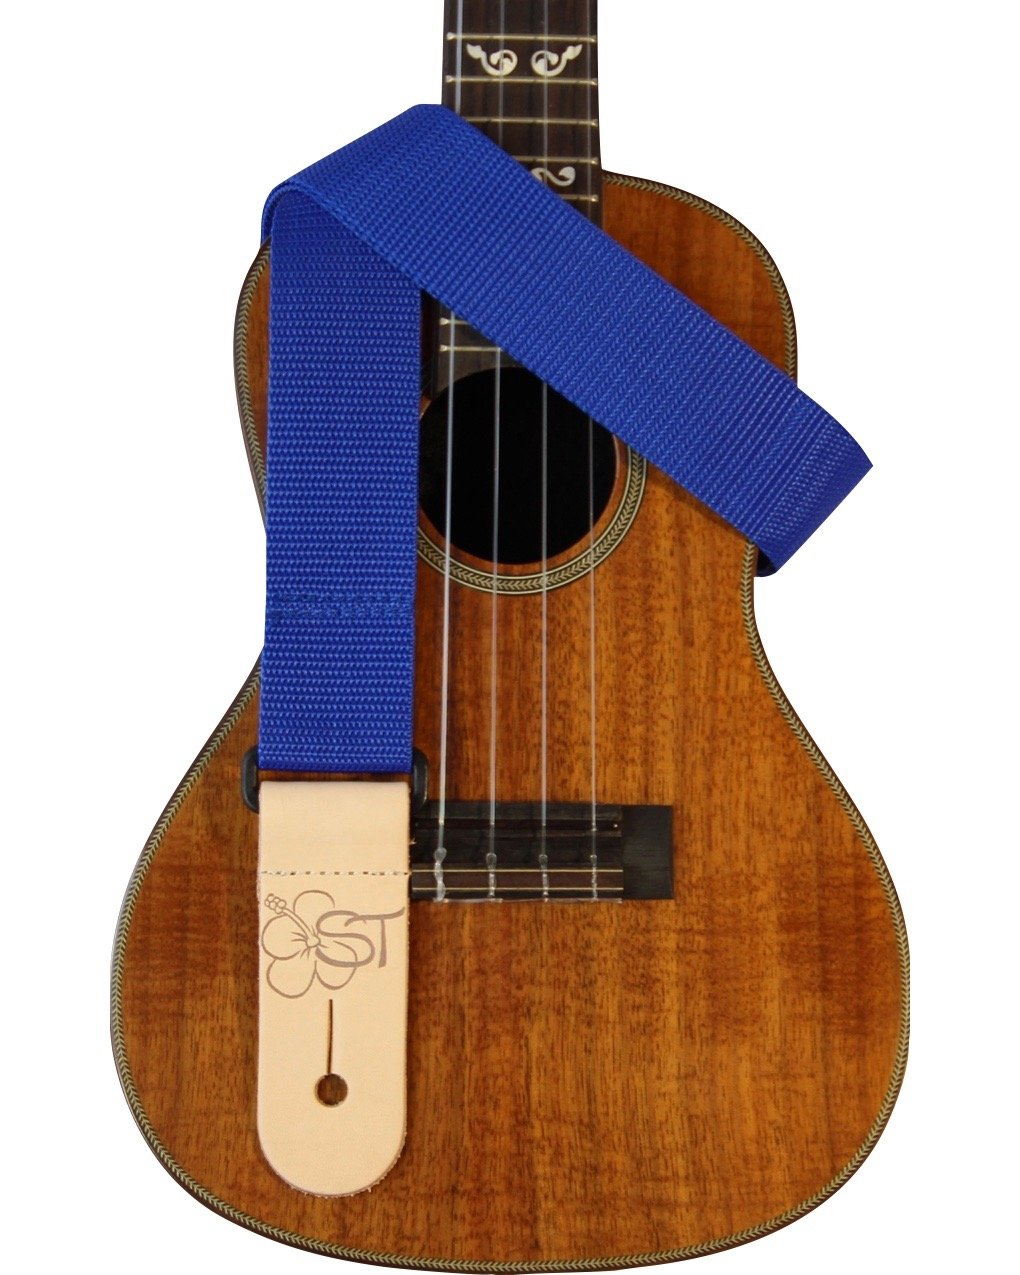 Sherrin's Threads 1.5 Blue Ukulele Strap